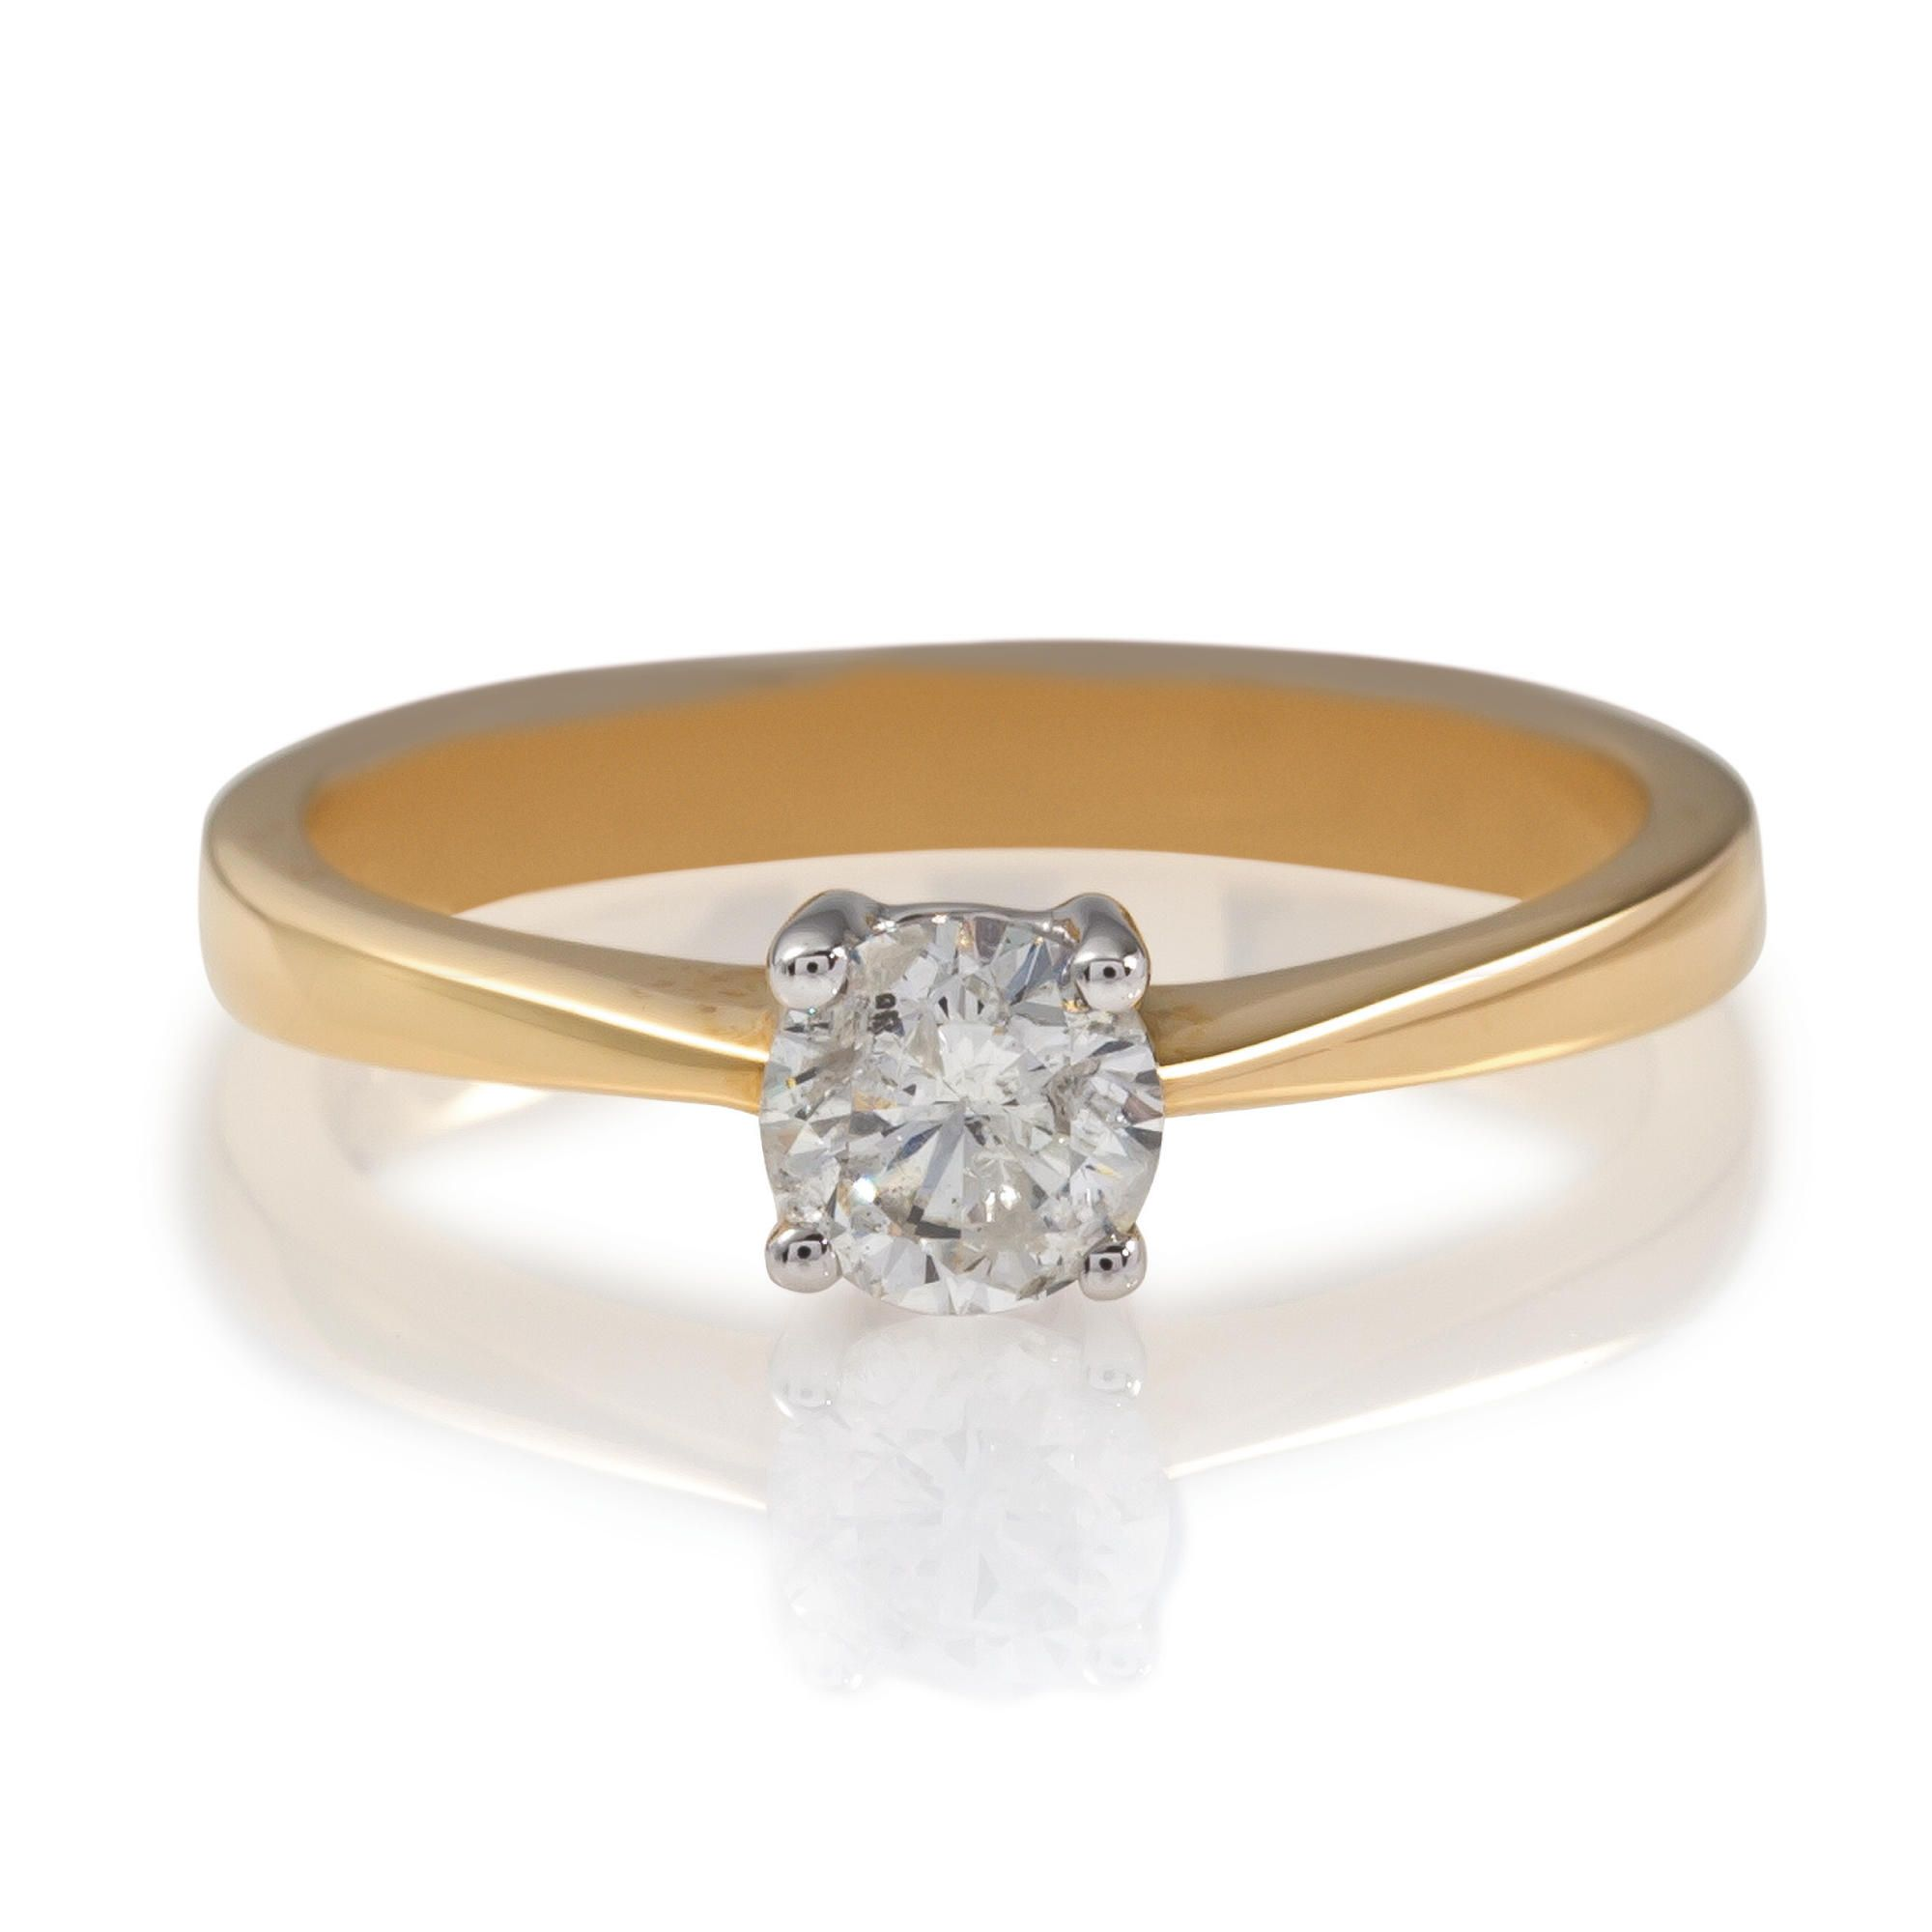 18ct Gold 50Pt Diamond Solitaire Ring, L at Tesco Direct